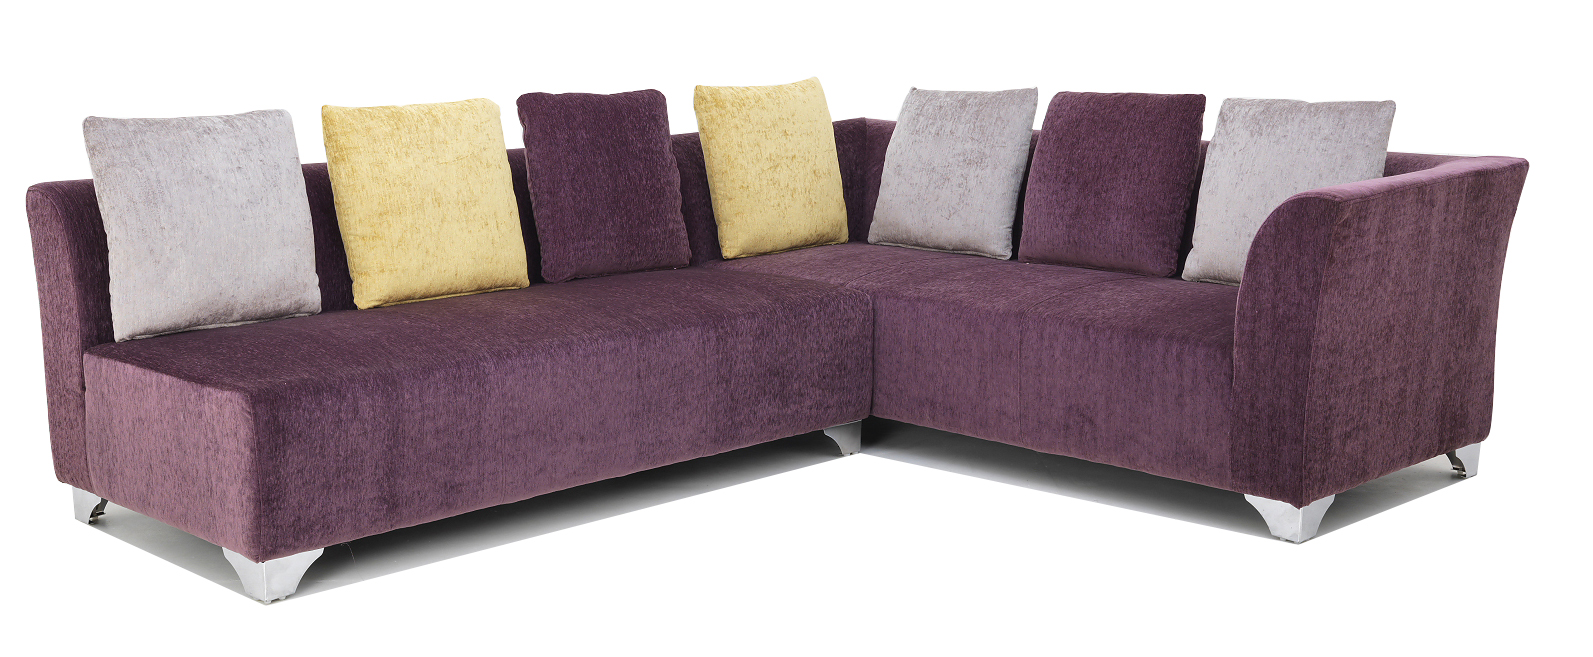 naples purple 3 seater sofa by homeland online modern furniture spacewood product. Black Bedroom Furniture Sets. Home Design Ideas